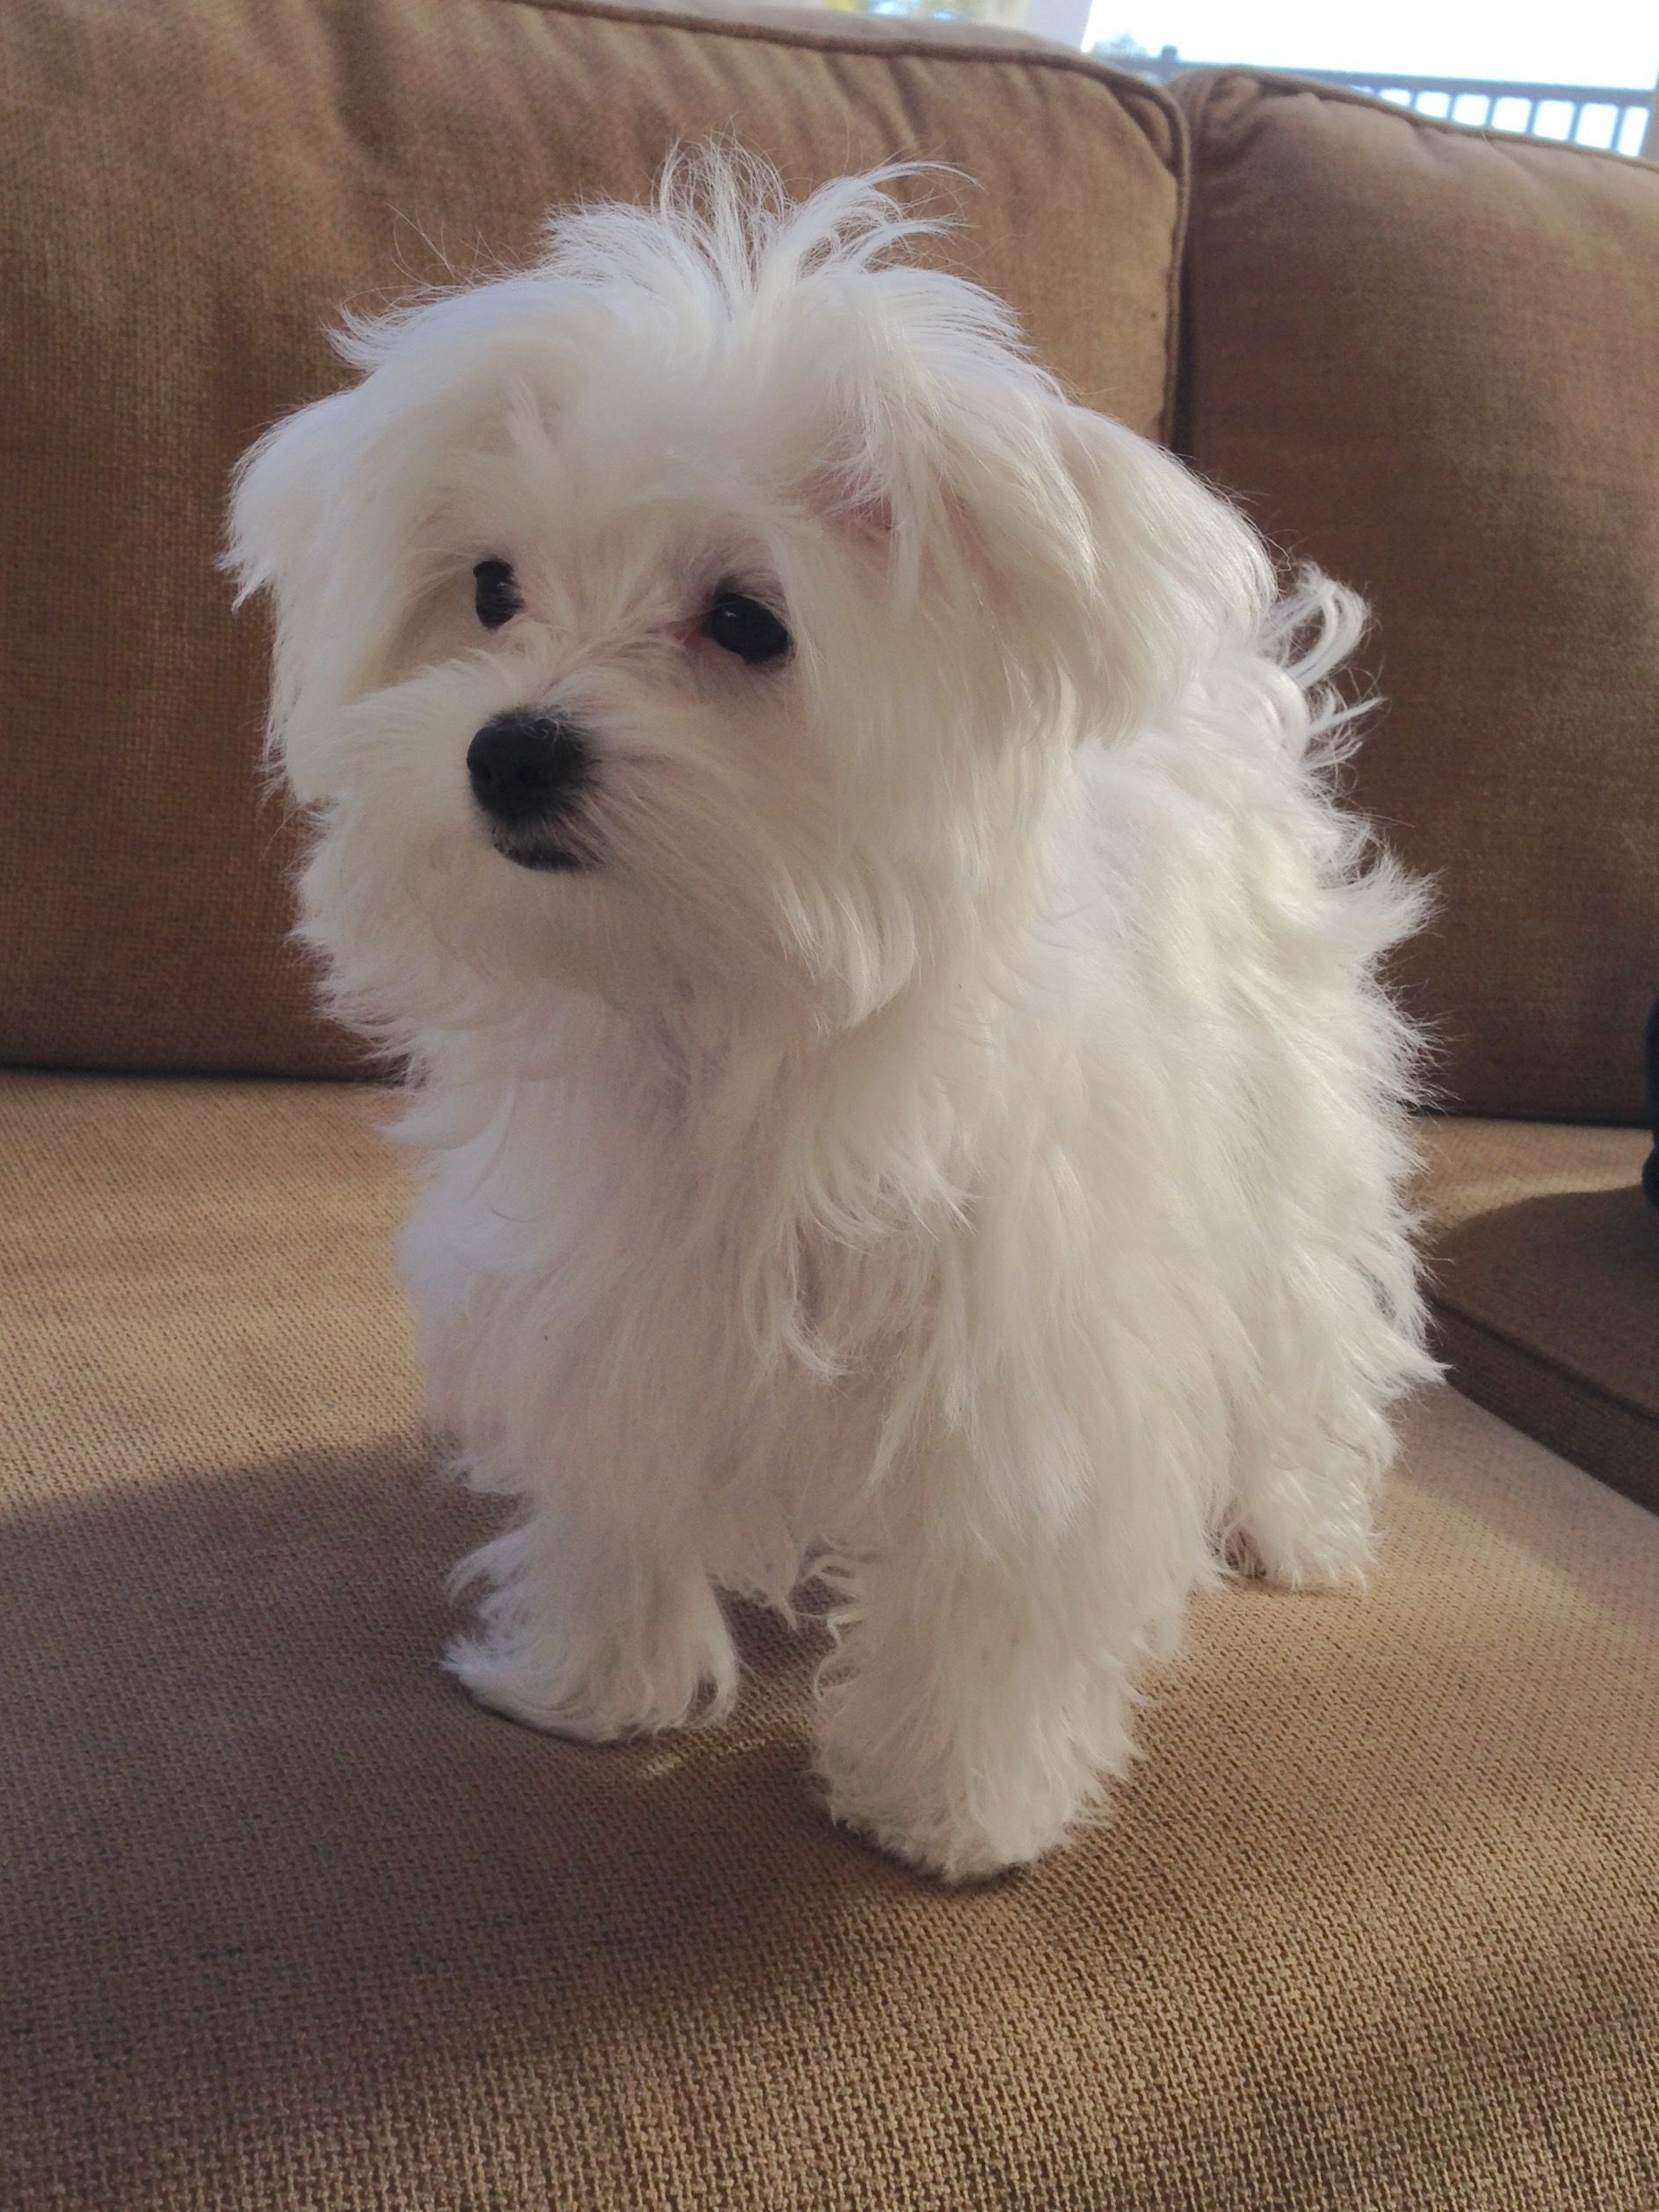 Maltese Coconut At 5 Months Puppies Maltese Puppy Cute Dogs